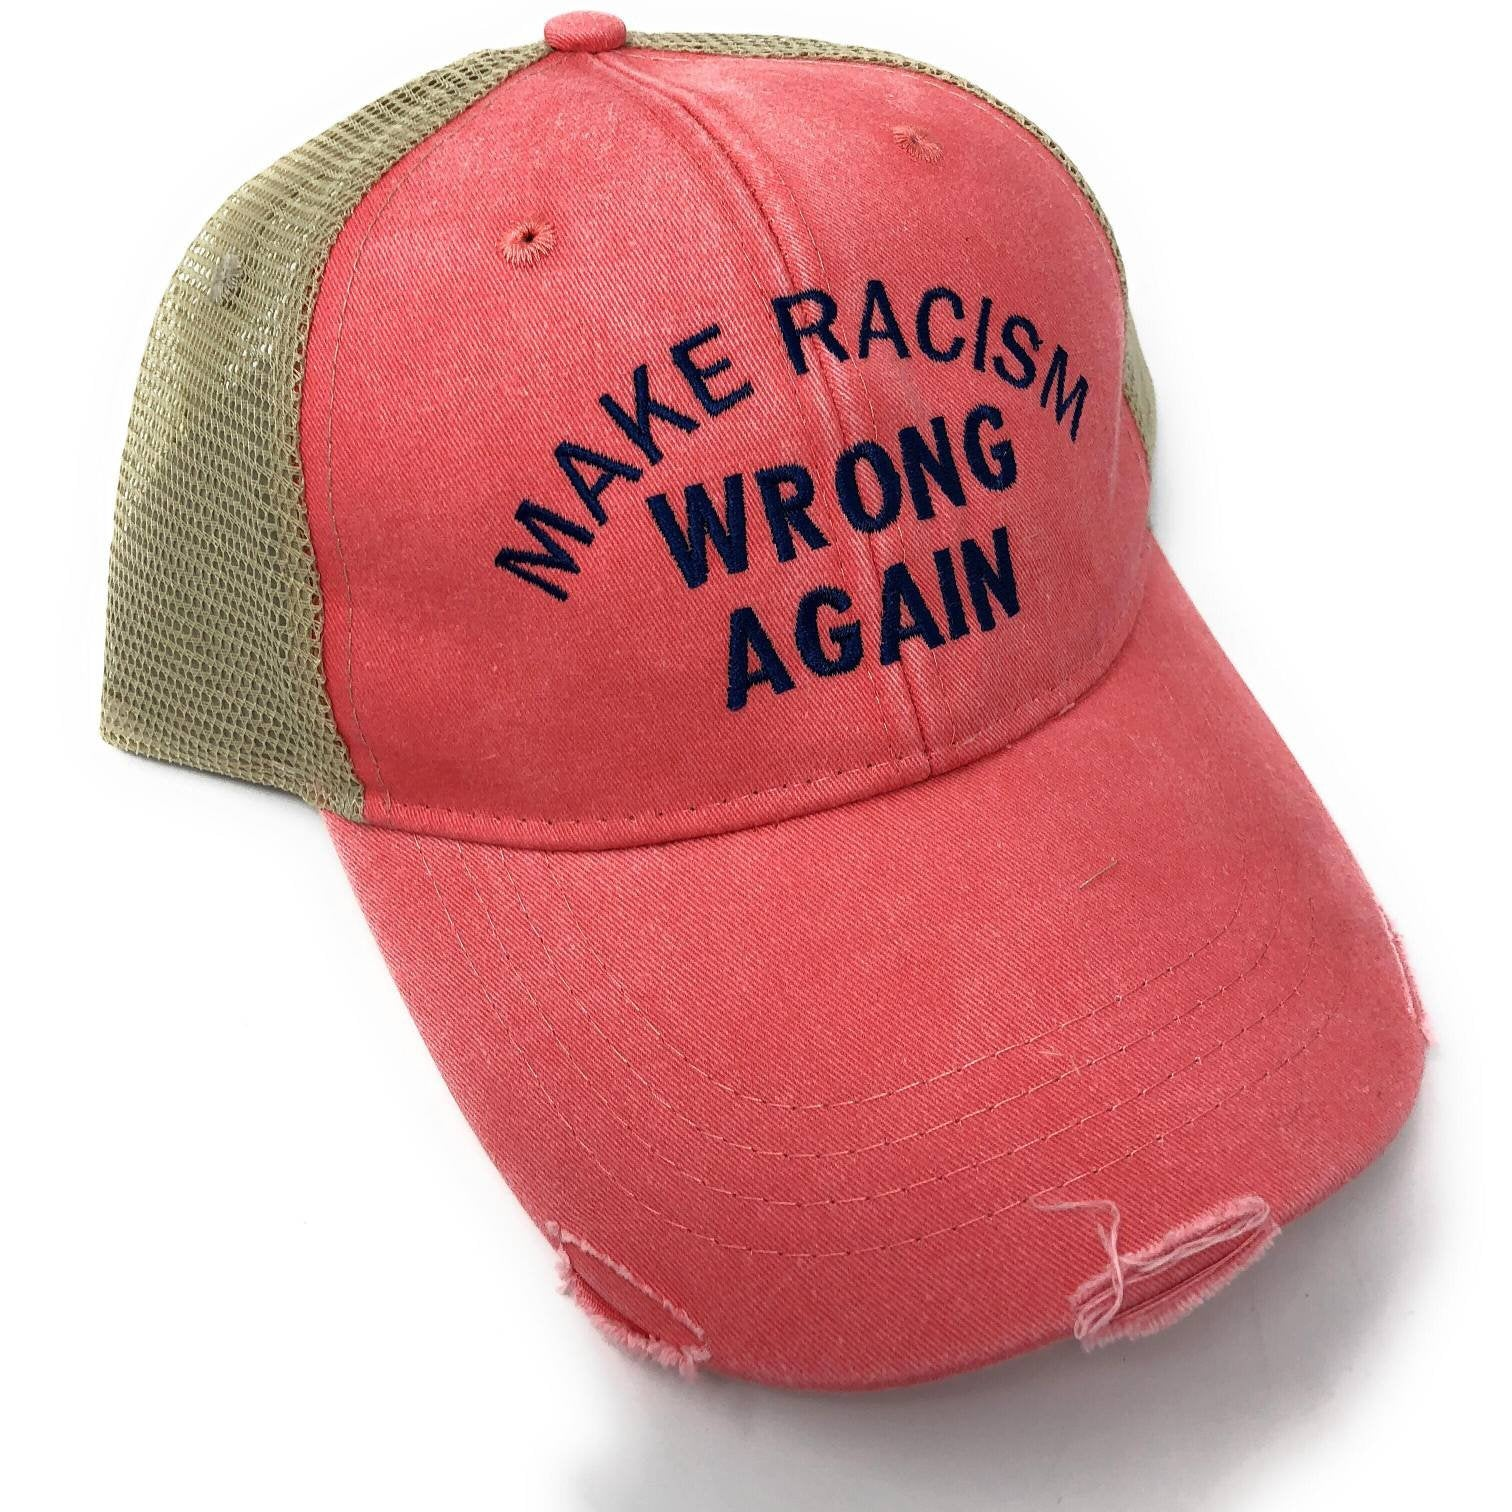 Make Racism Wrong Again Hat, Embroidered Anti Discrimination Cap, Liberal, Pride, Peace, No Racism, Custom, Personalized Baseball Hat